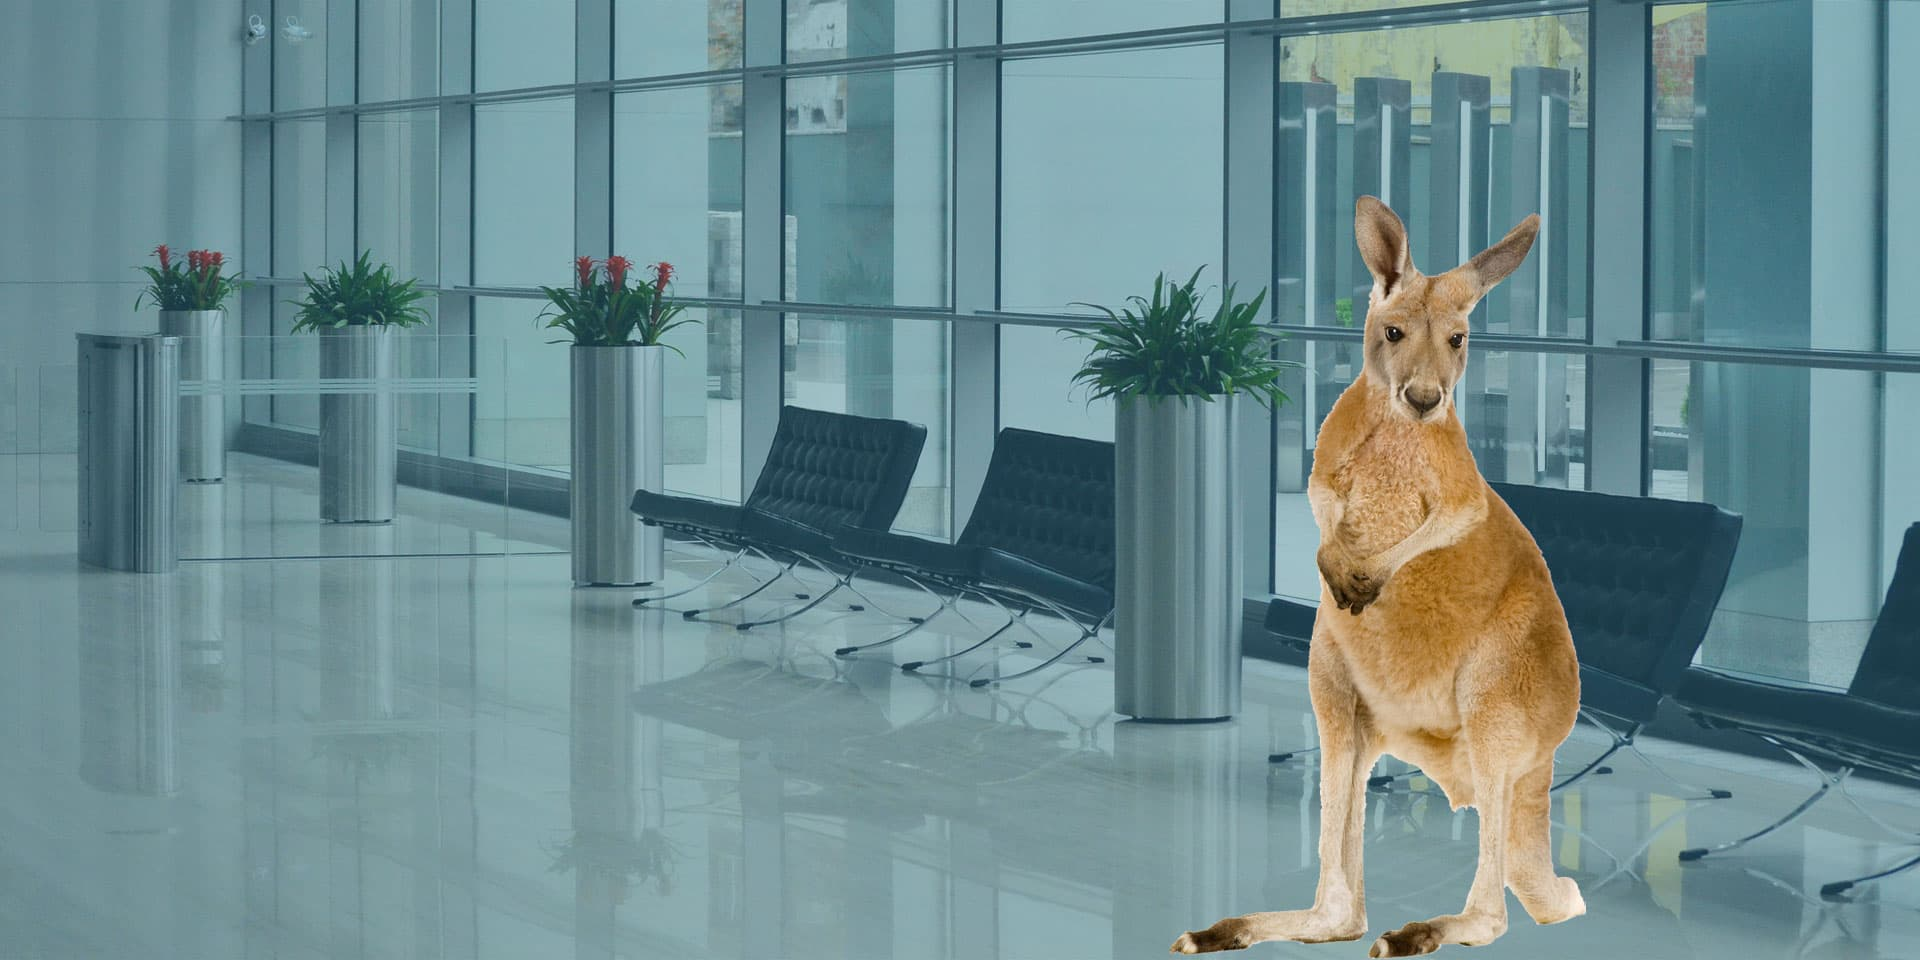 Kangaroo standing in a modern office building lobby with chairs and plants in silver cylindrical planters